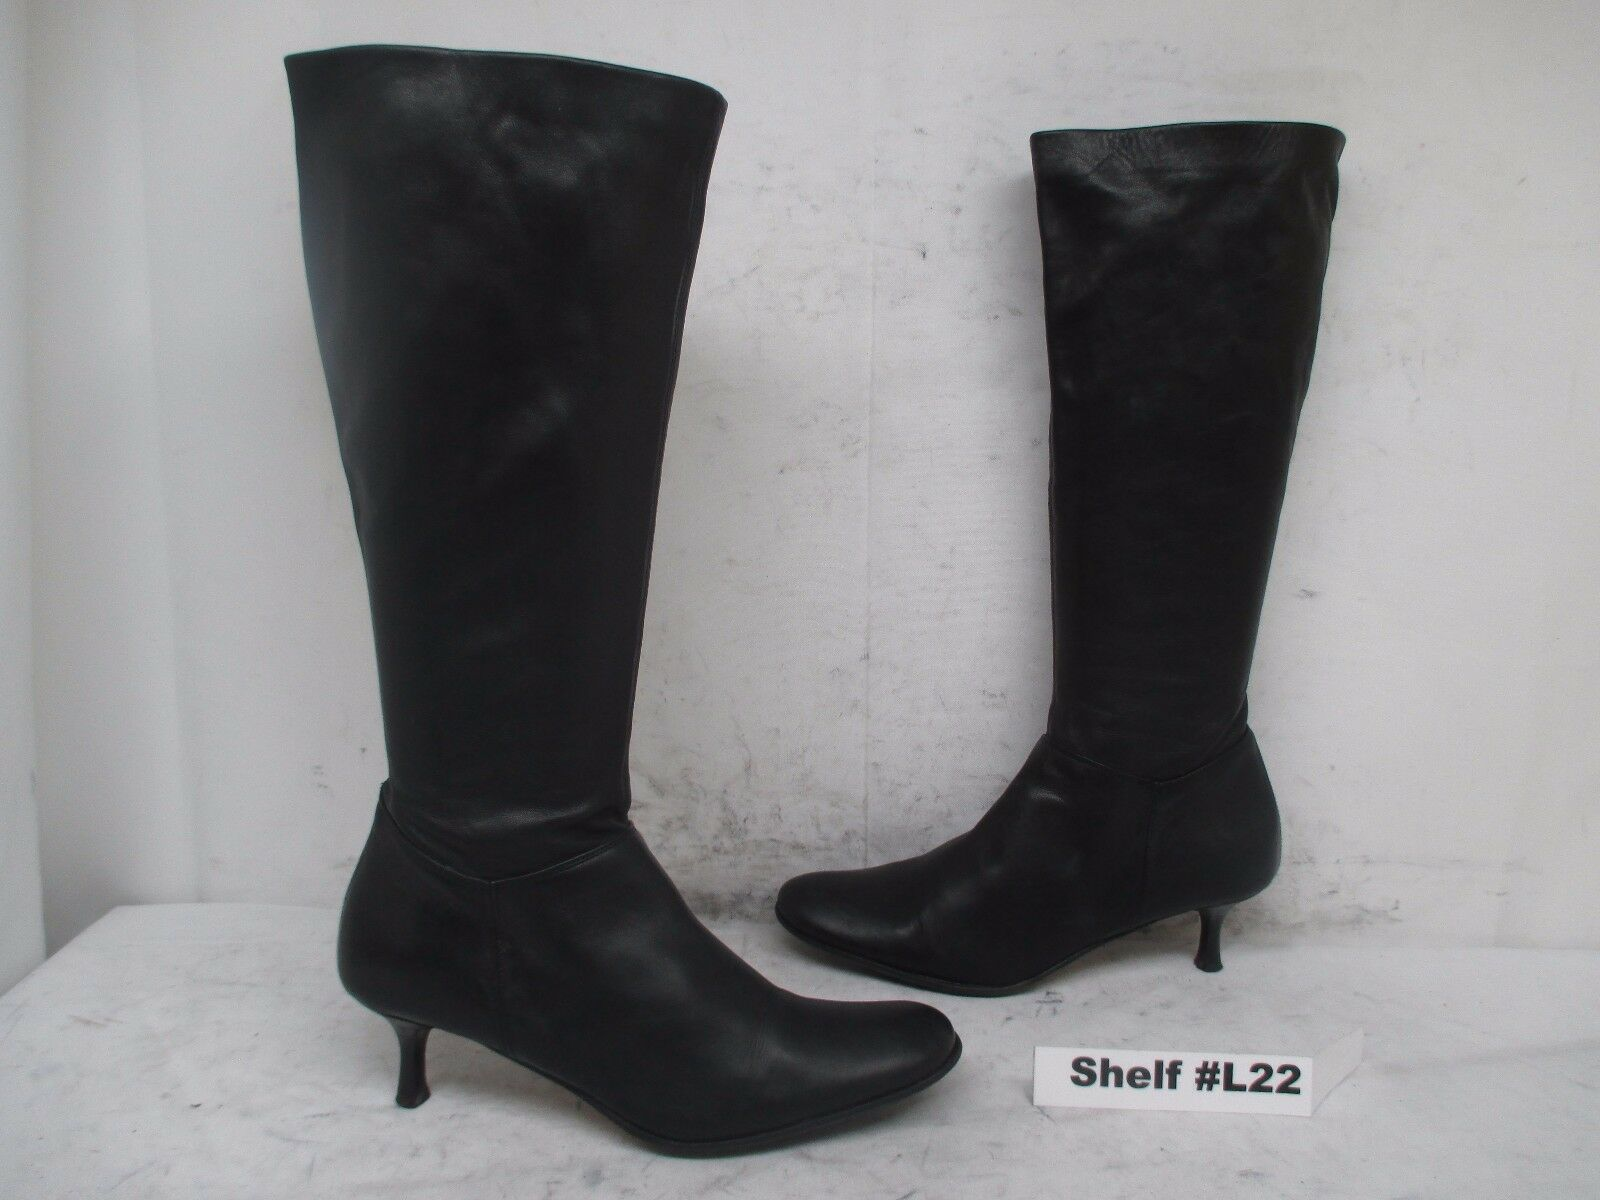 Kenneth Cole New York Black Leather Zip Knee High Boots Size 38 EUR